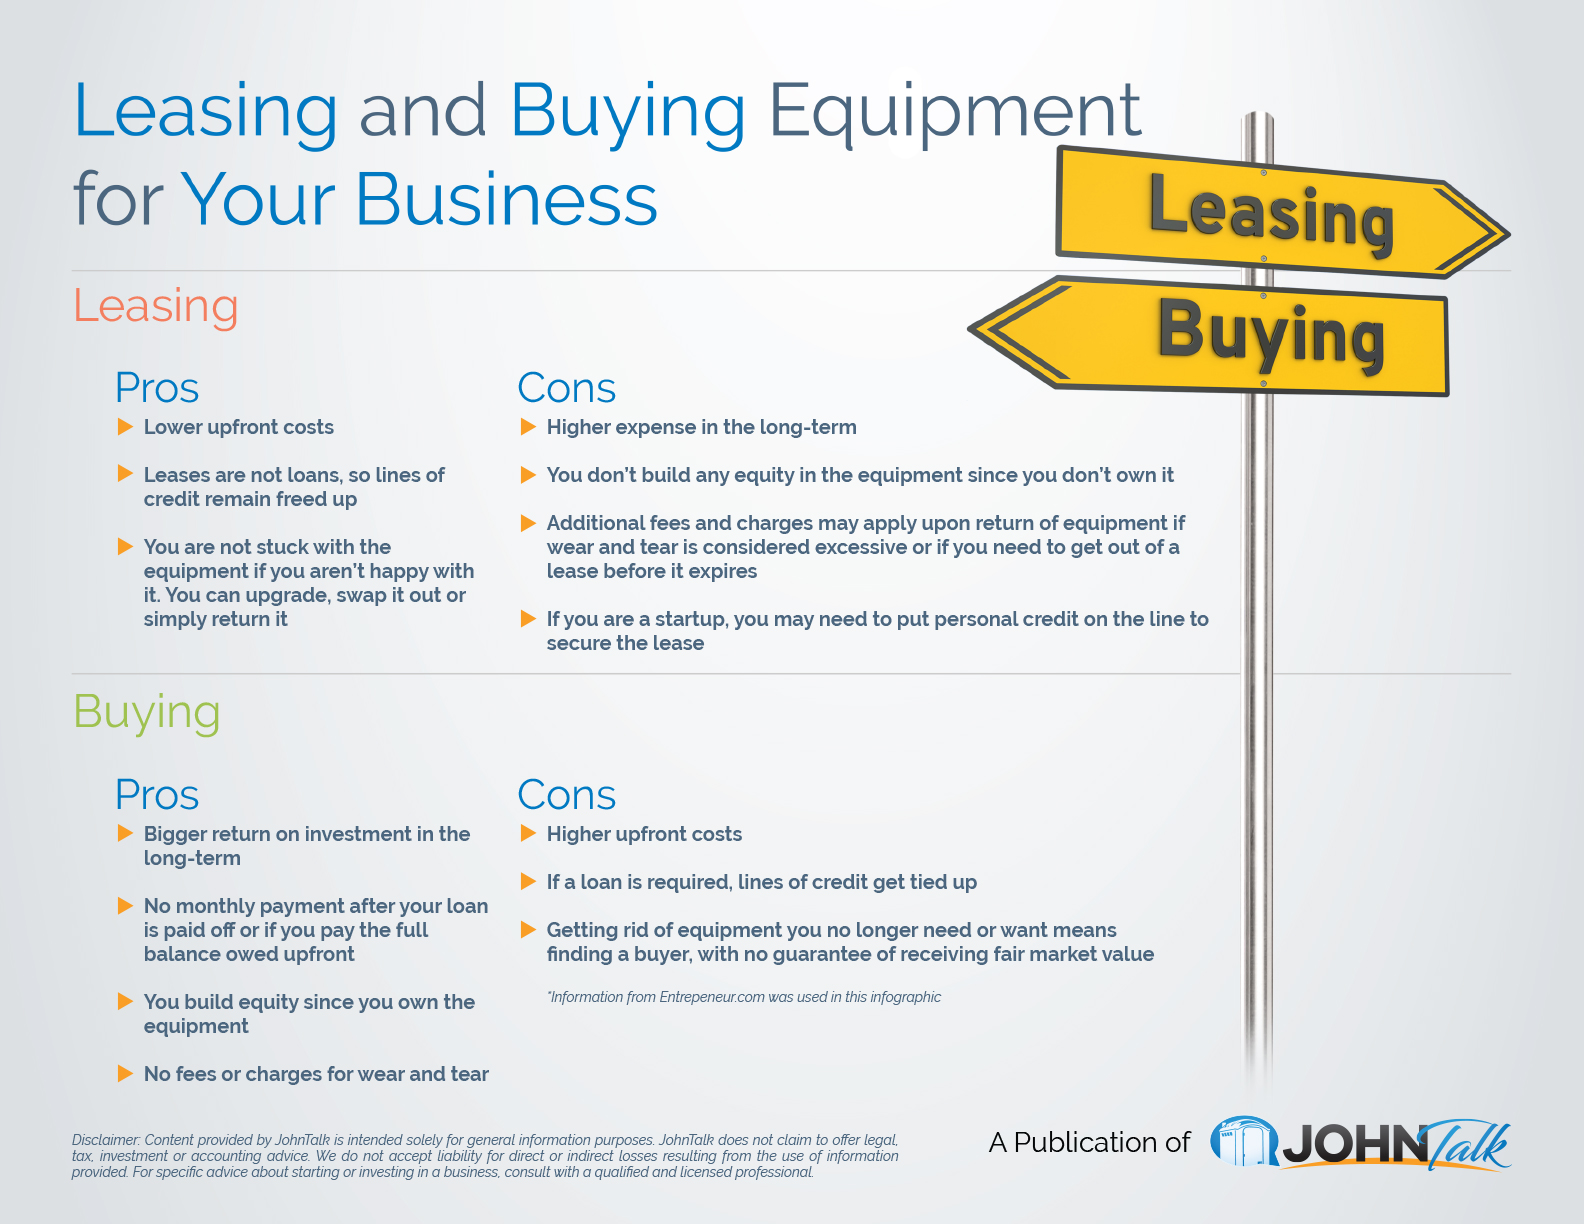 Leasing and Buying Equipment for Your Business